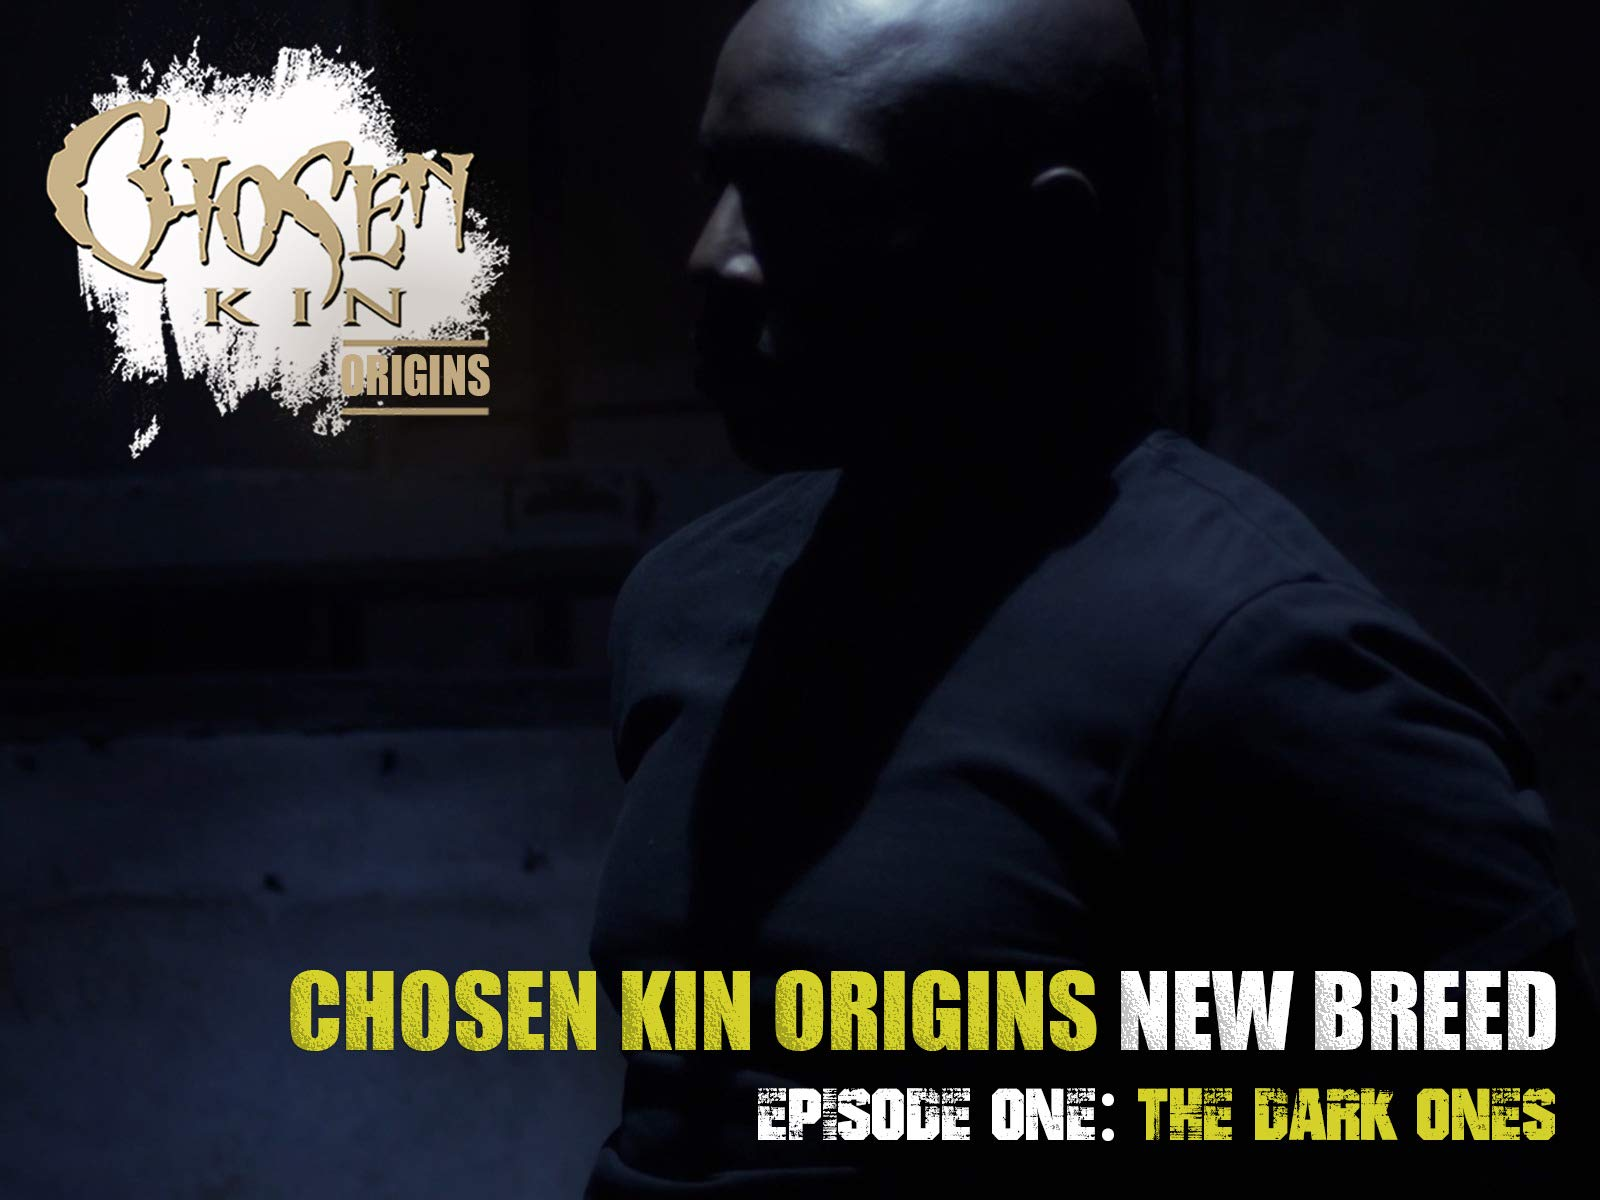 Chosen Kin Origins: New Breed